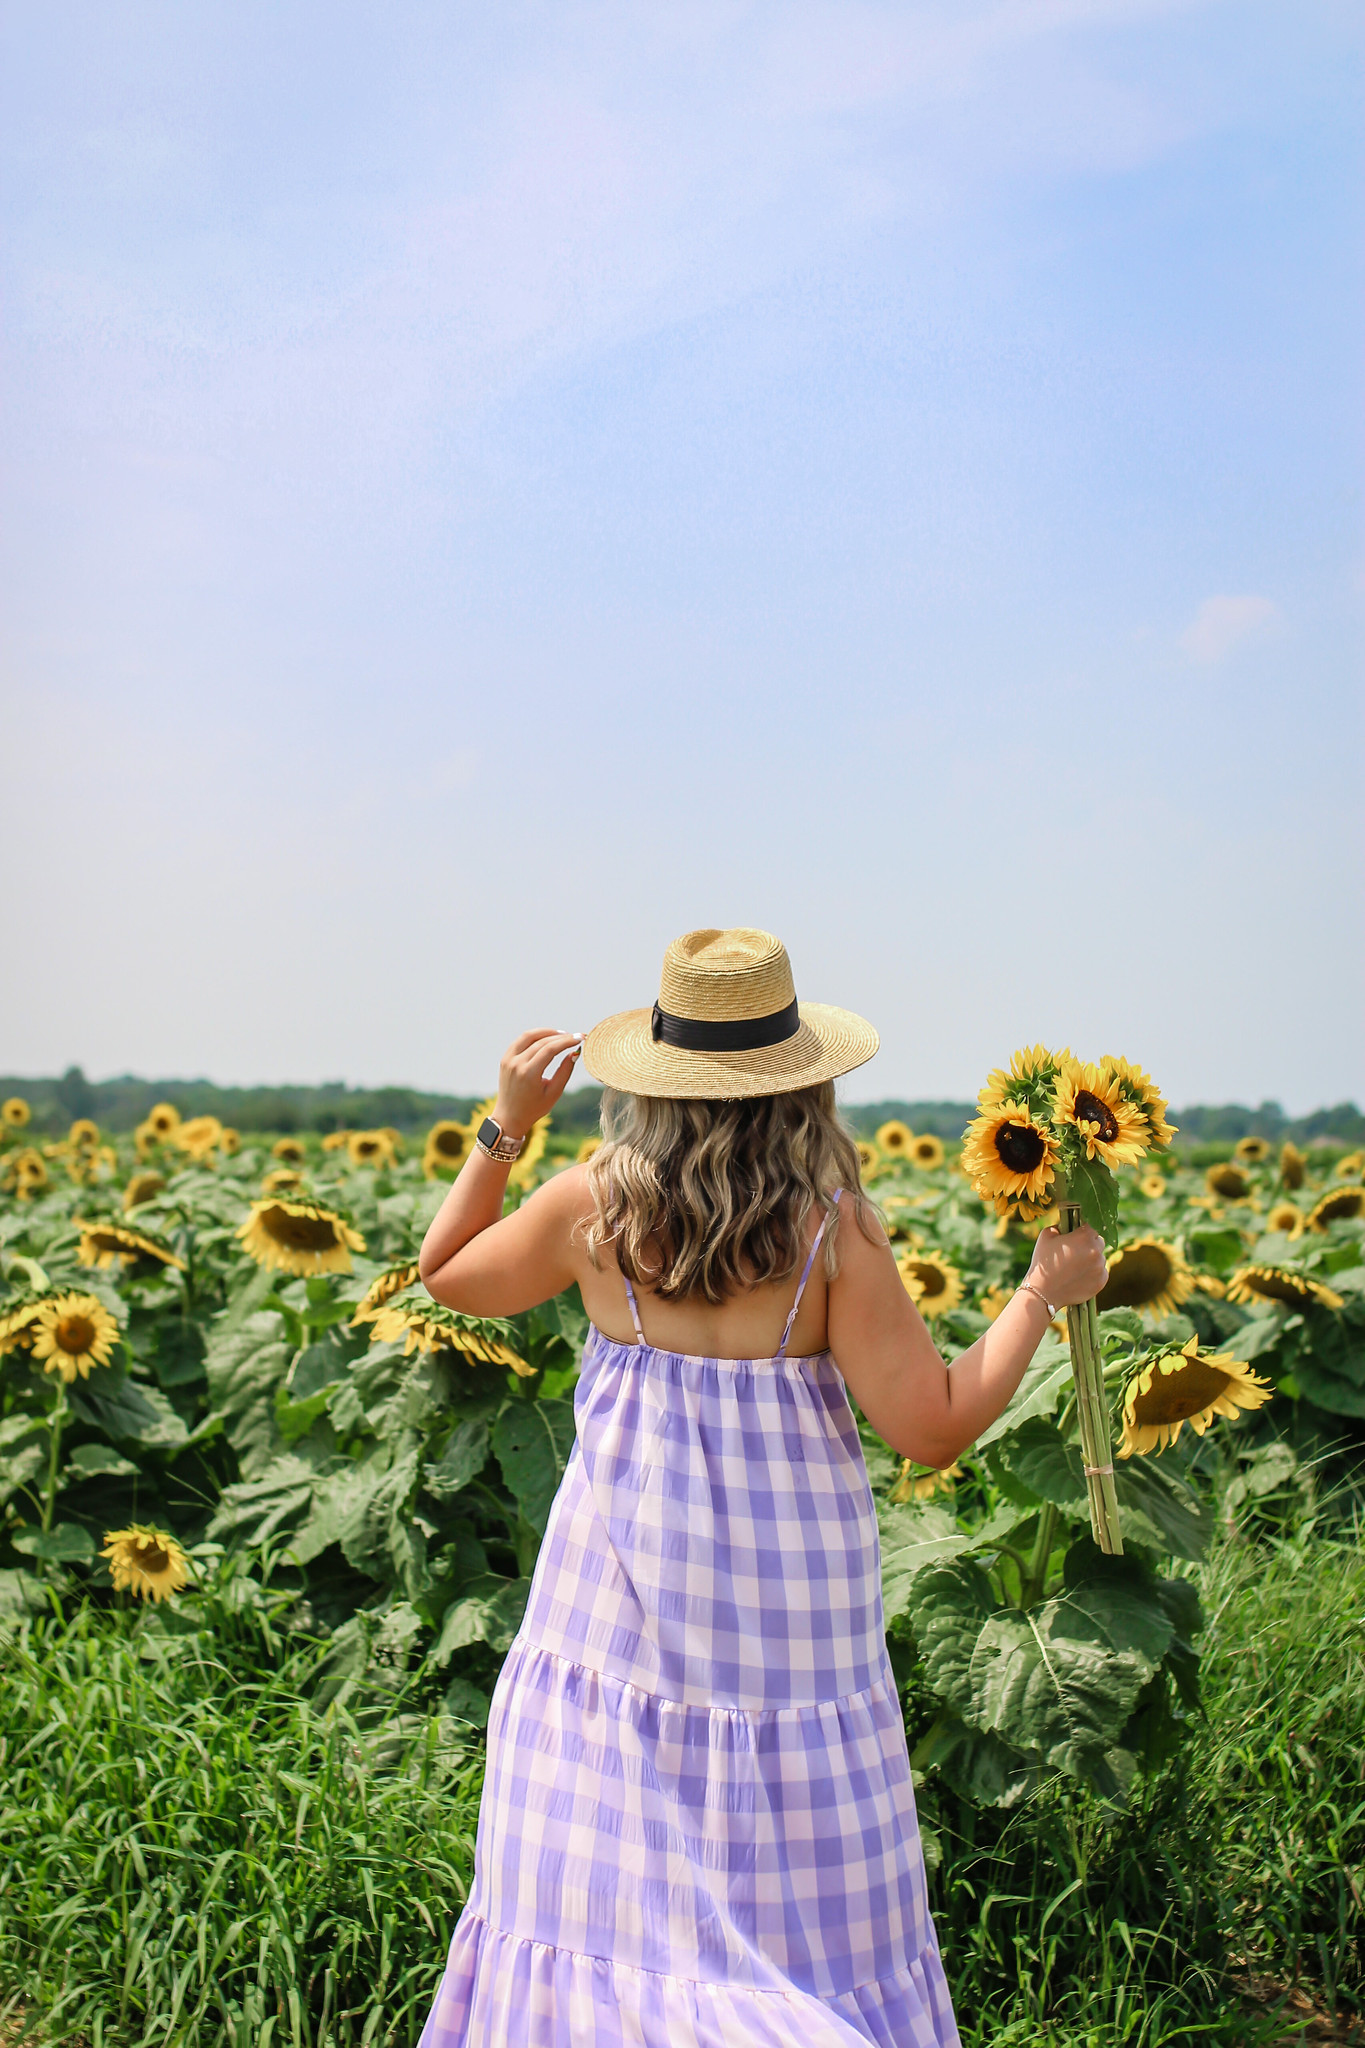 Why You Need to Visit a Sunflower Field this Year | Best Sunflower Fields to Visit in New York | Sunflower Fields in New York | Beautiful Sunflower Farms | Sunflower Farms Near NYC | Sunflower Field Aesthetic | Sunflower Landscape | Sunflower Field Poses | Sunflower Field Photoshoot Inspiration | Sunflower Aesthetic | Sunflower Season